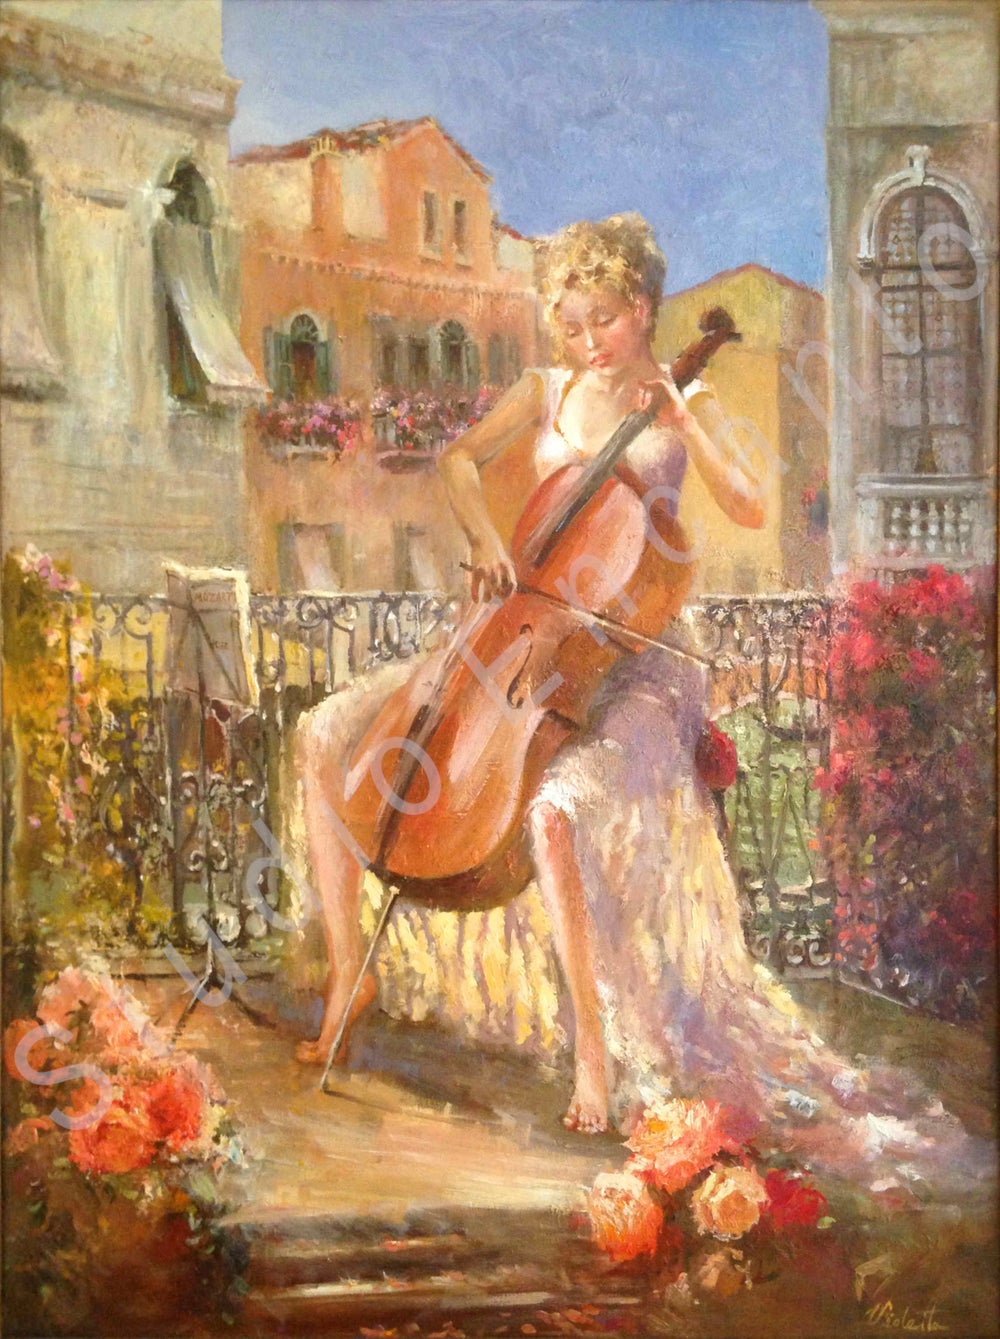 Image of Mozart Concerto by Violetta Chandler